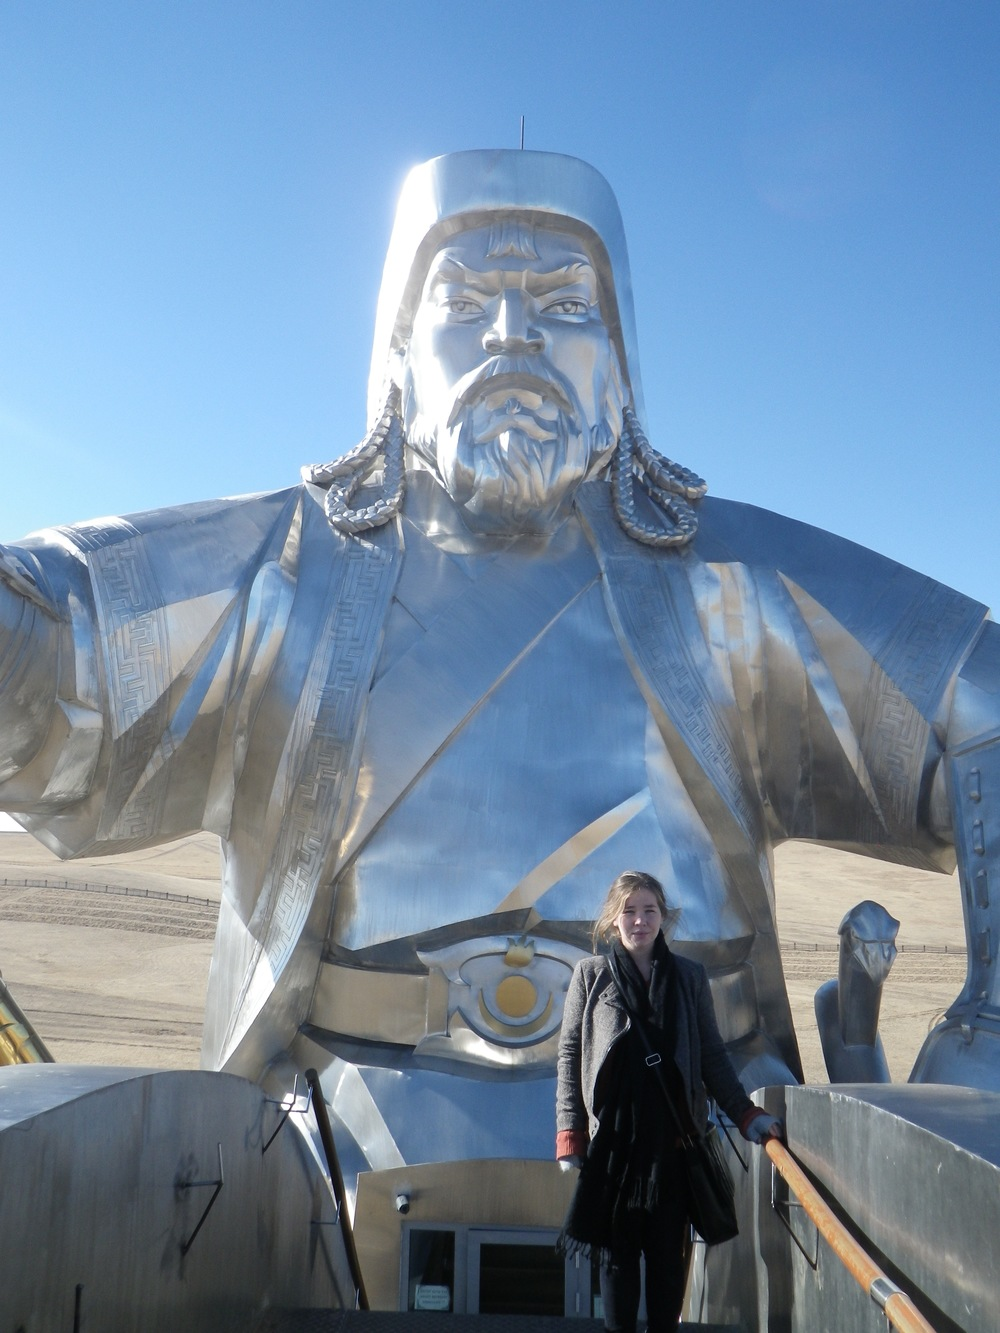 Budget travel in Mongolia. Backpacking Mongolia. Road trip in Mongolia. Chinggis Khan Statue in Mongolia.